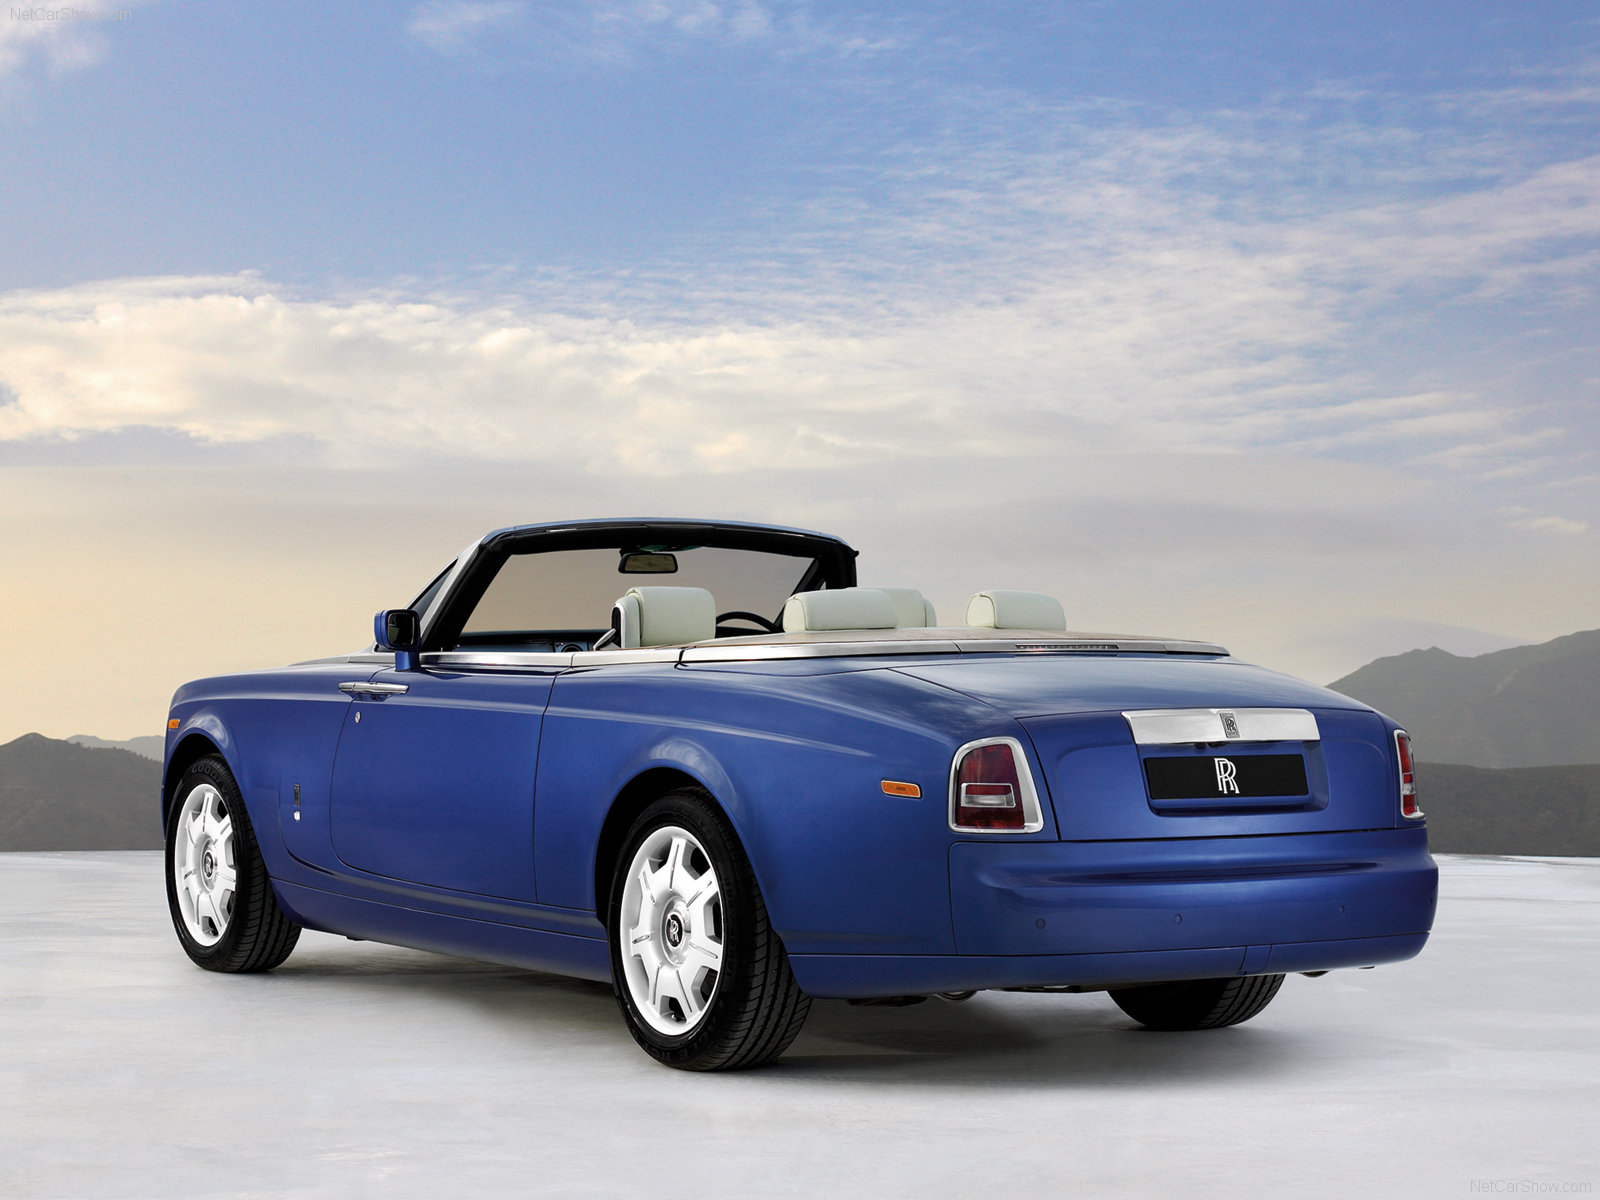 2008 Rolls royce Phantom Drophead Coupe #19